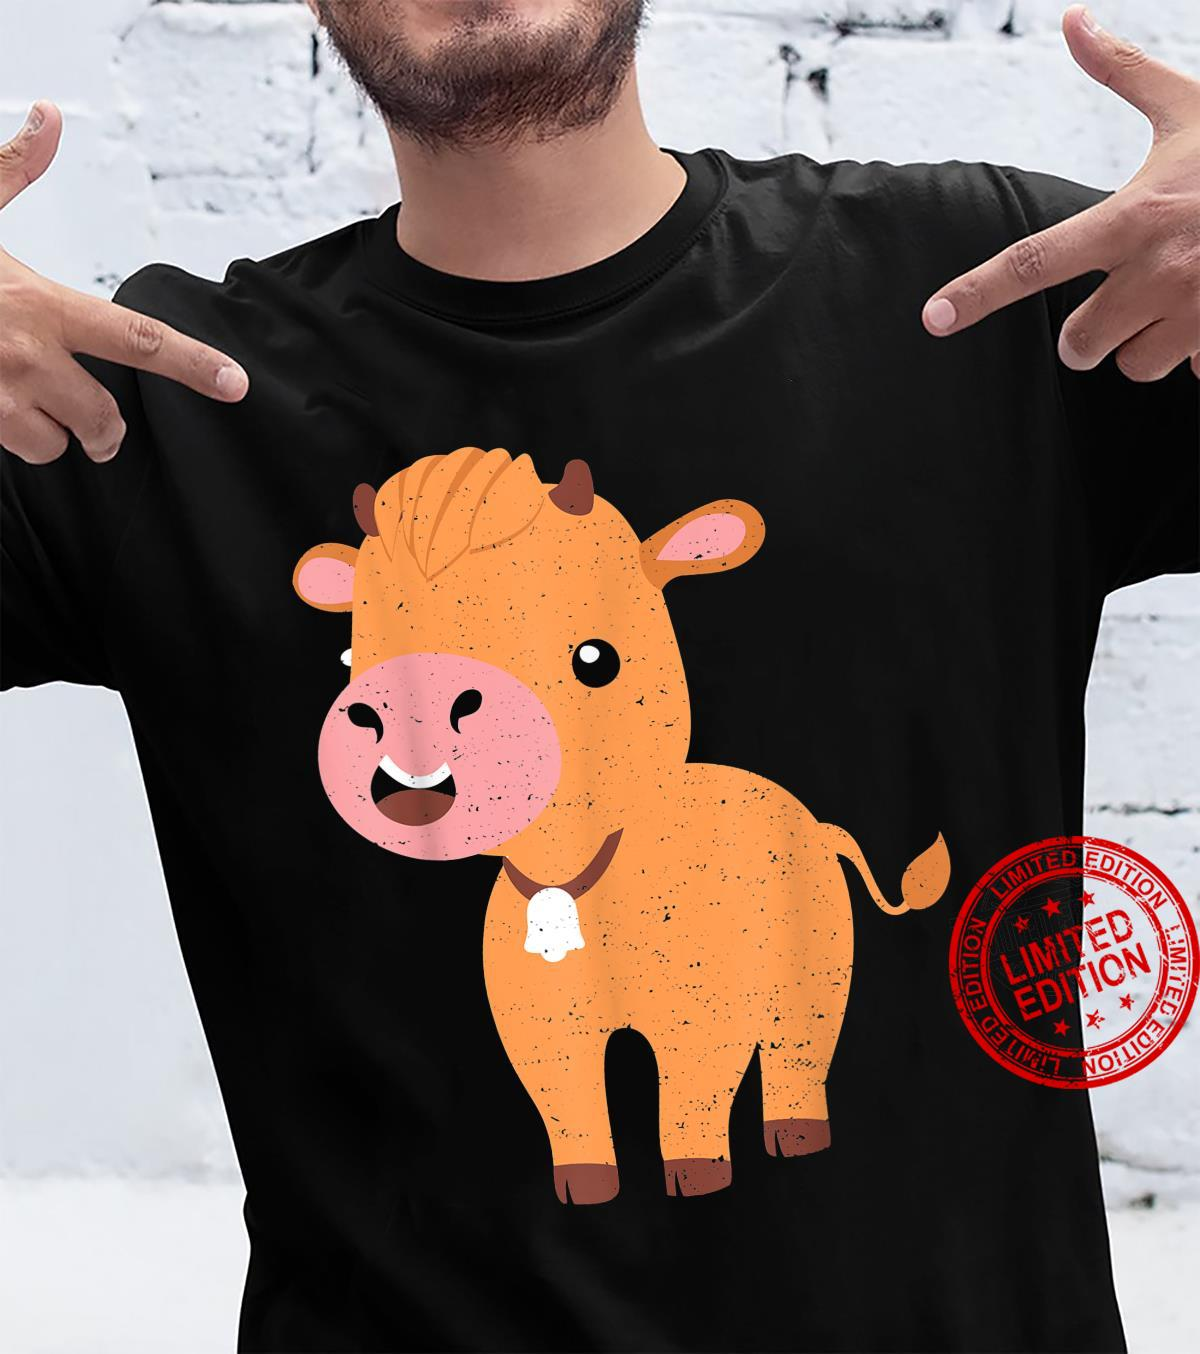 Vieh Highland Cattle Cow Landwirt Sprüche Shirt